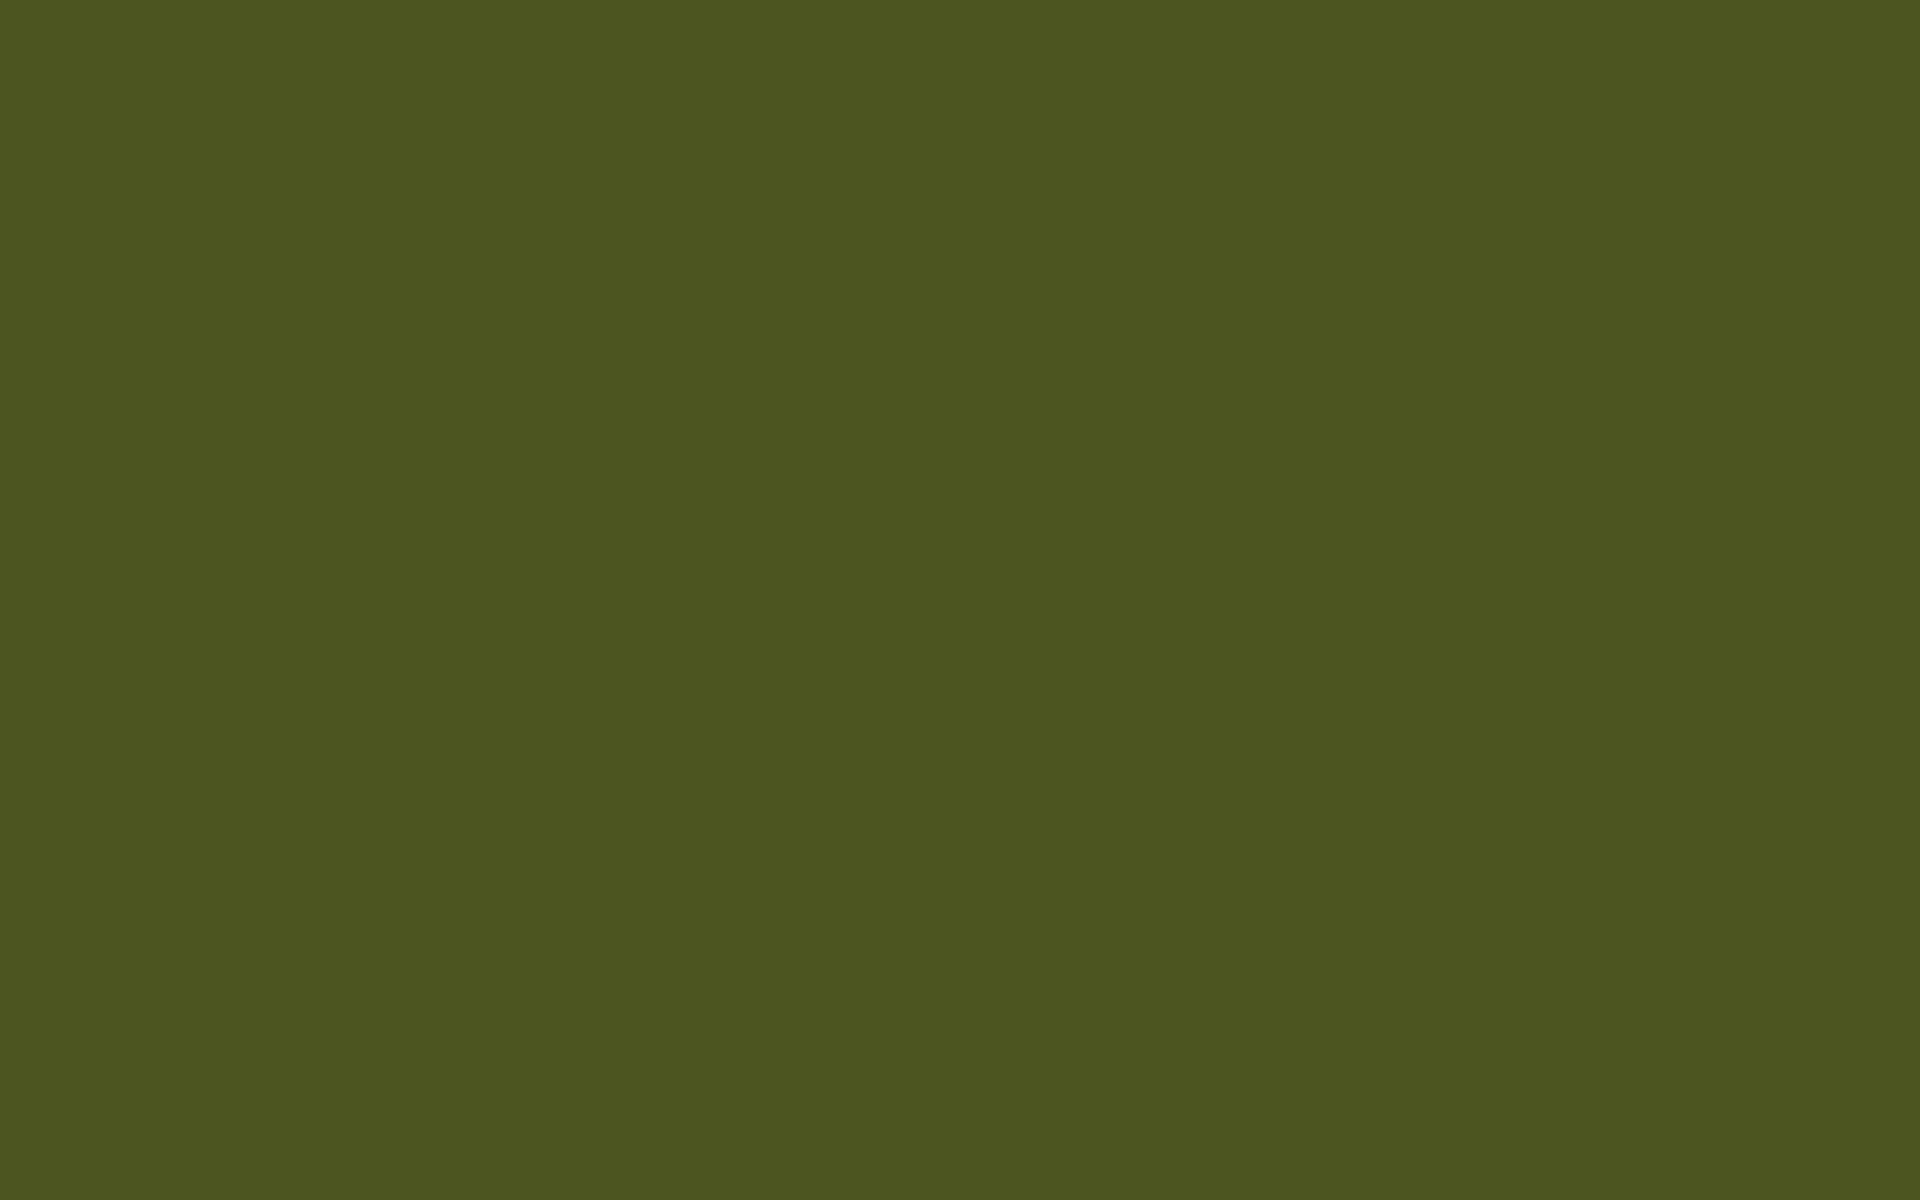 1920x1200 -army-green-solid-color-background.jpg